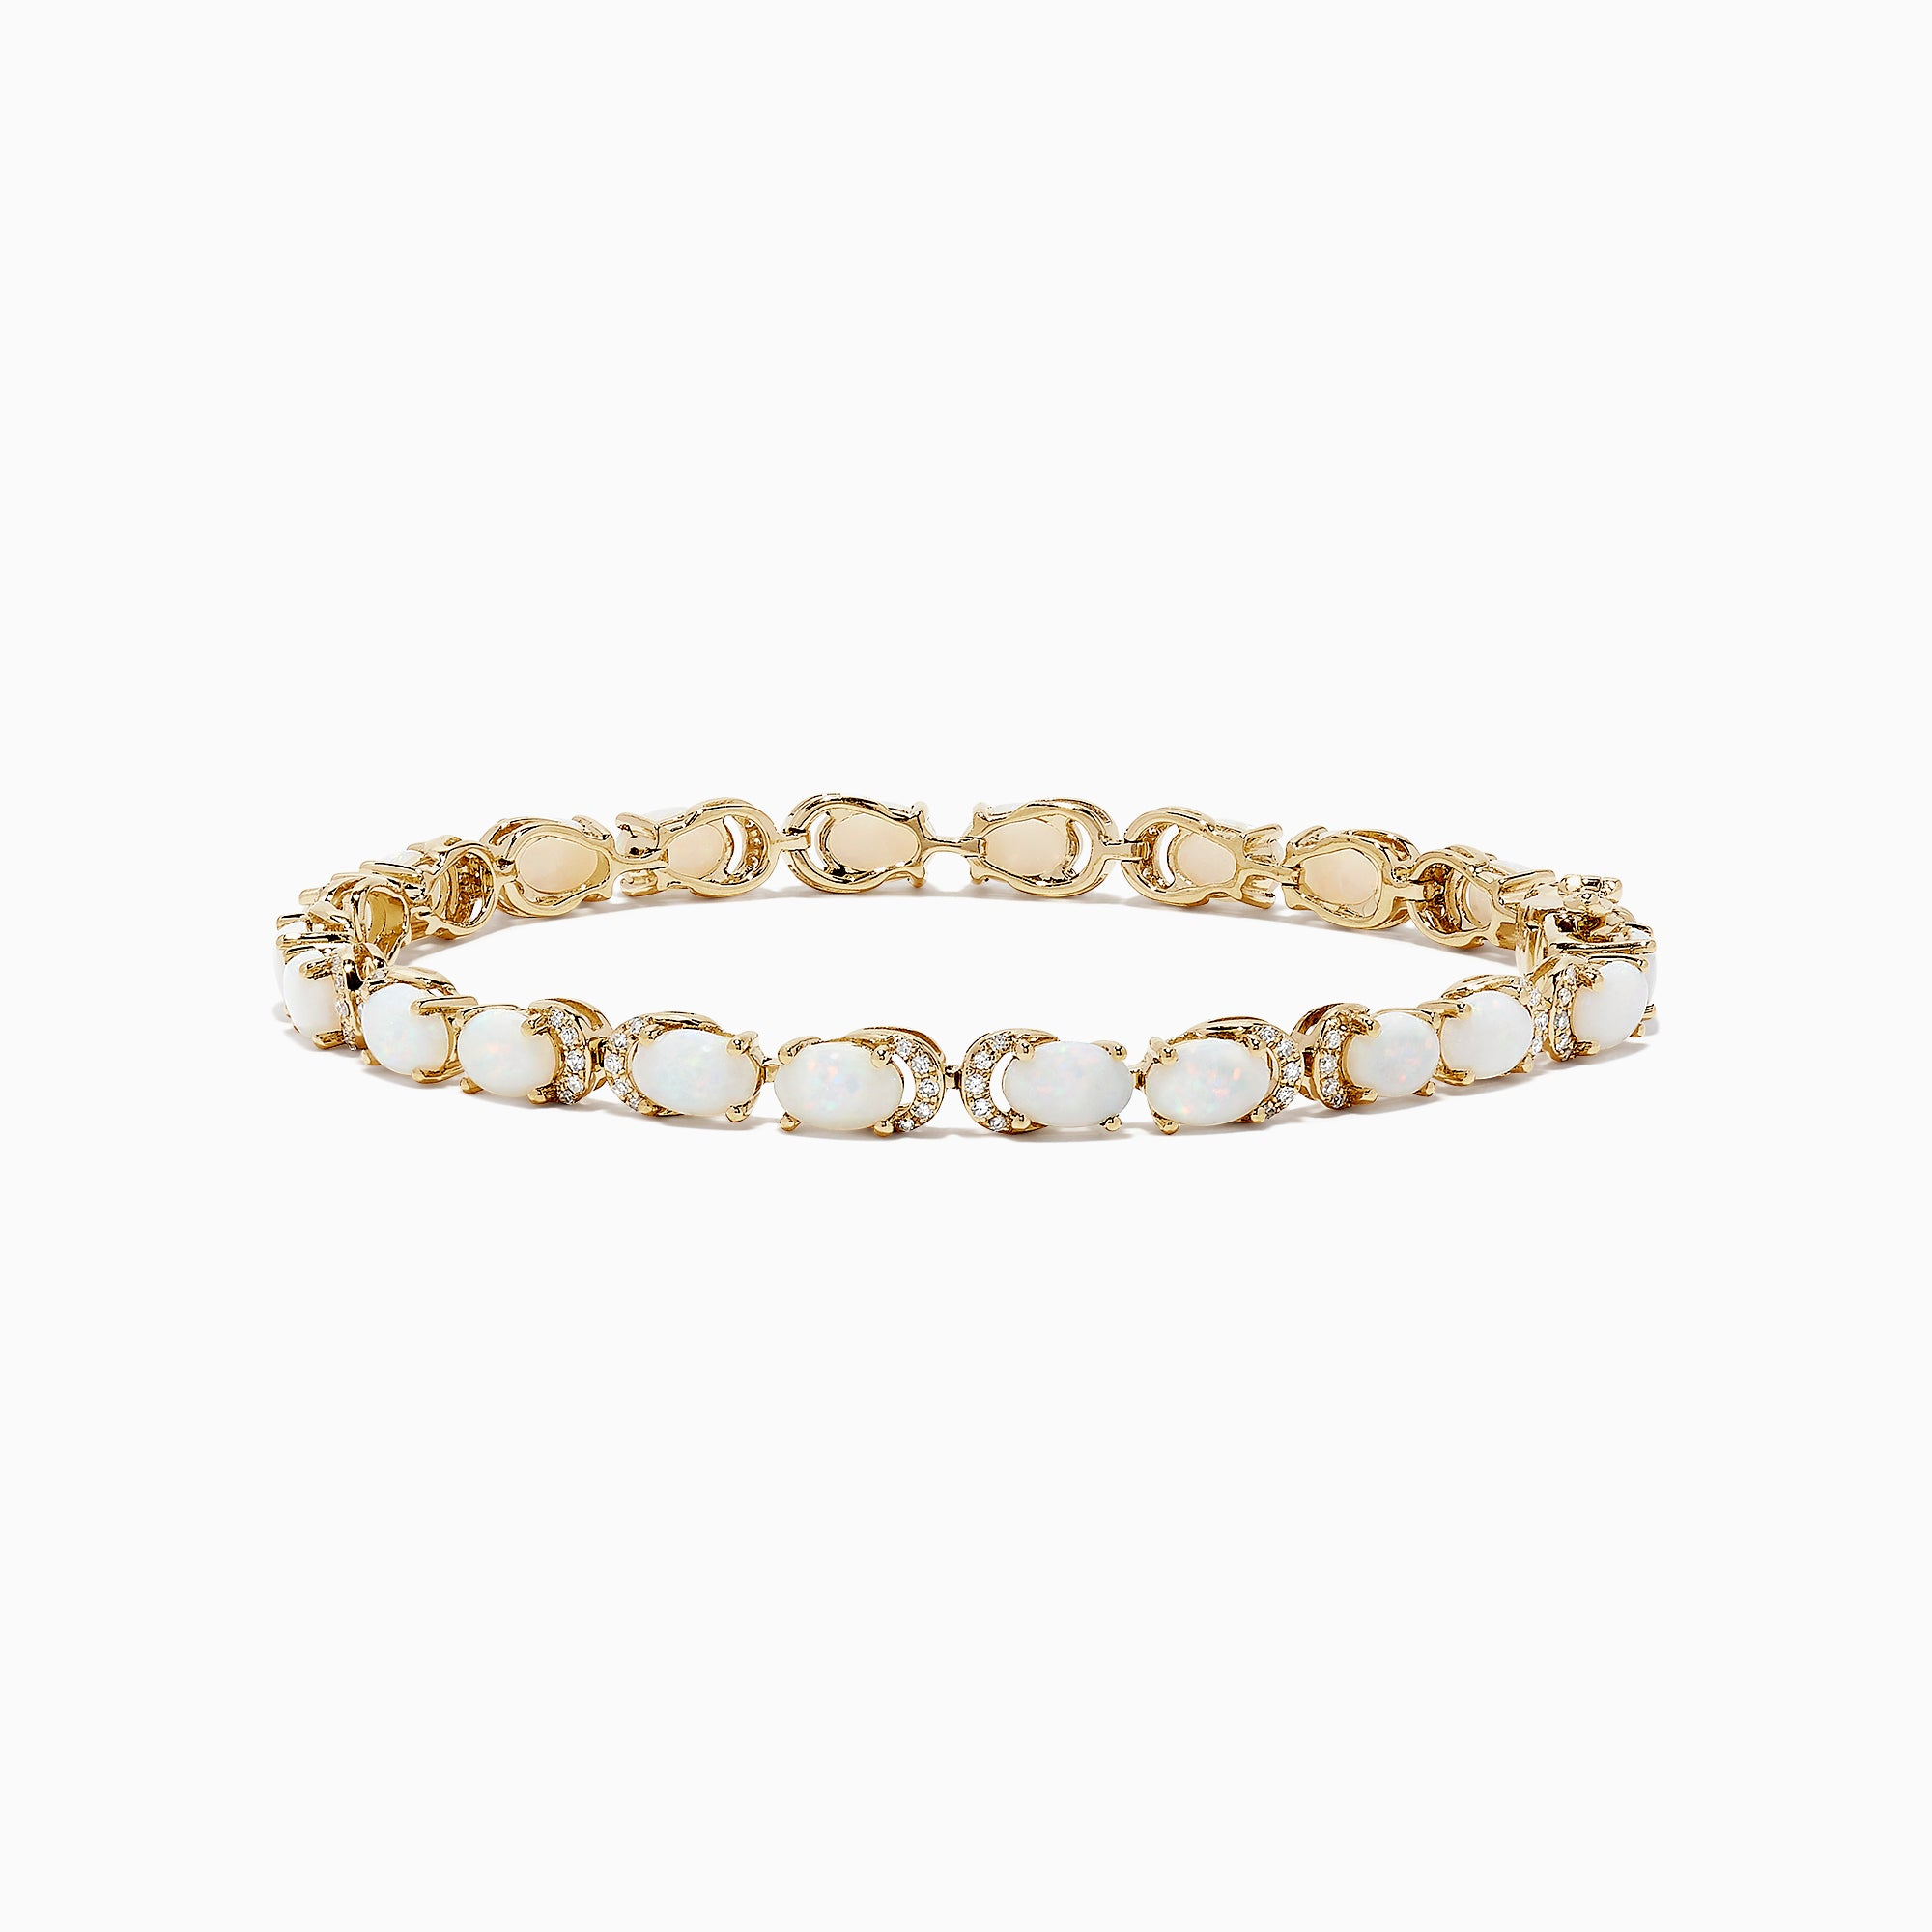 Effy 14K Yellow Gold Opal & Diamond Accented Tennis Bracelet, 6.91 TCW